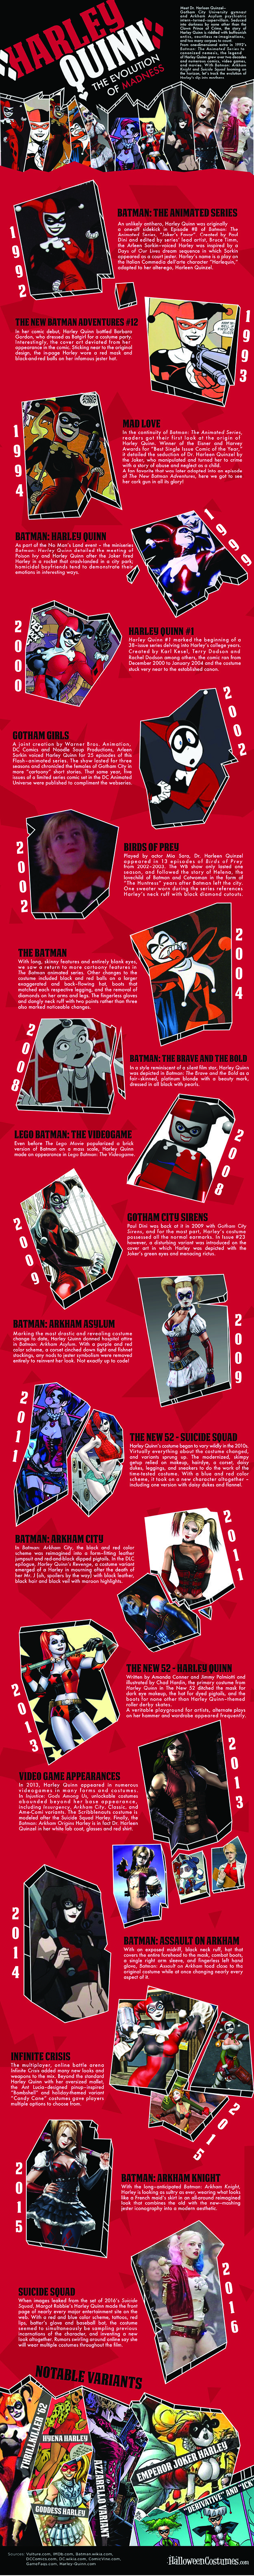 Harley Quinn: Evolution of Madness #infographic